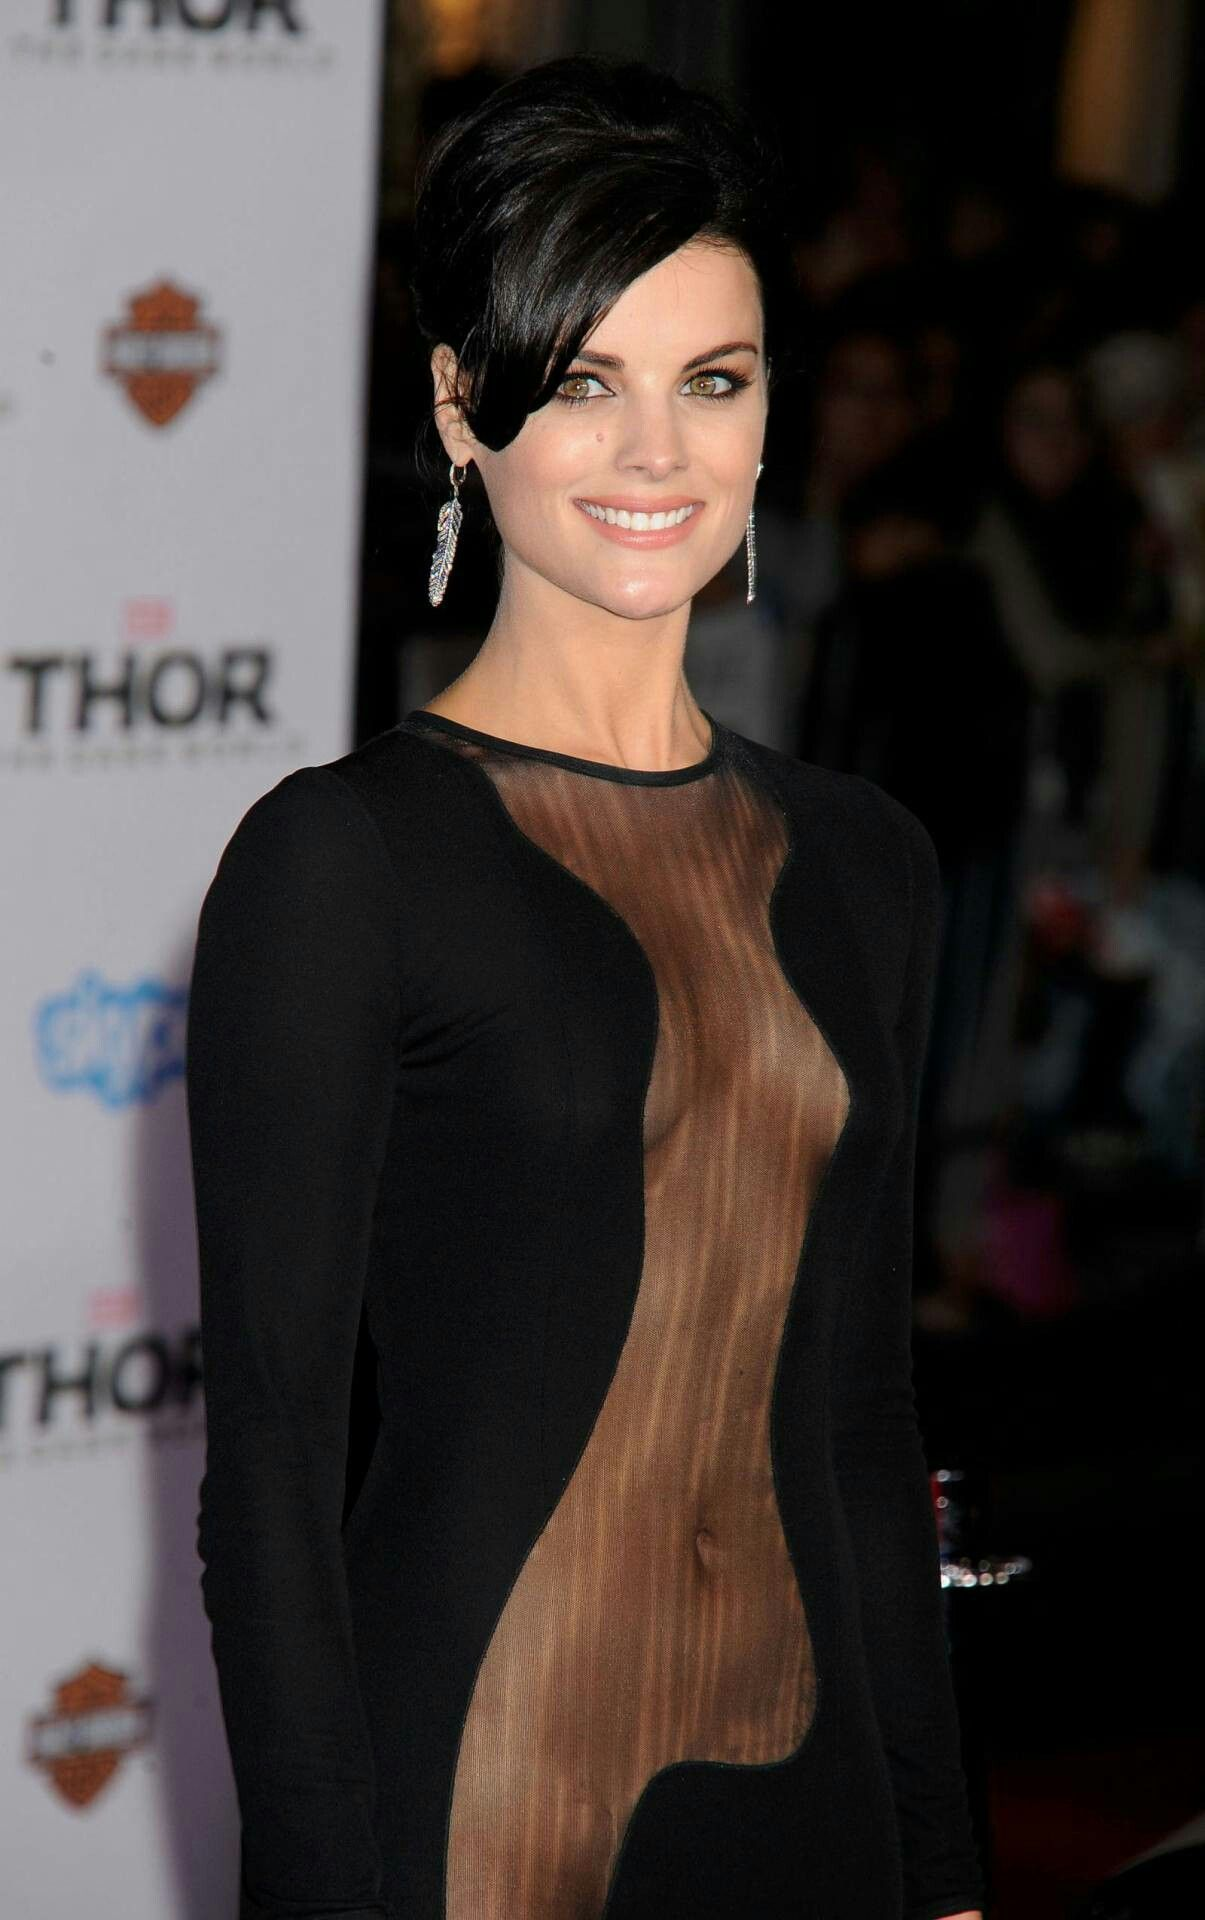 Leaked Jaimie Alexander nudes (93 photo), Ass, Bikini, Instagram, cameltoe 2020